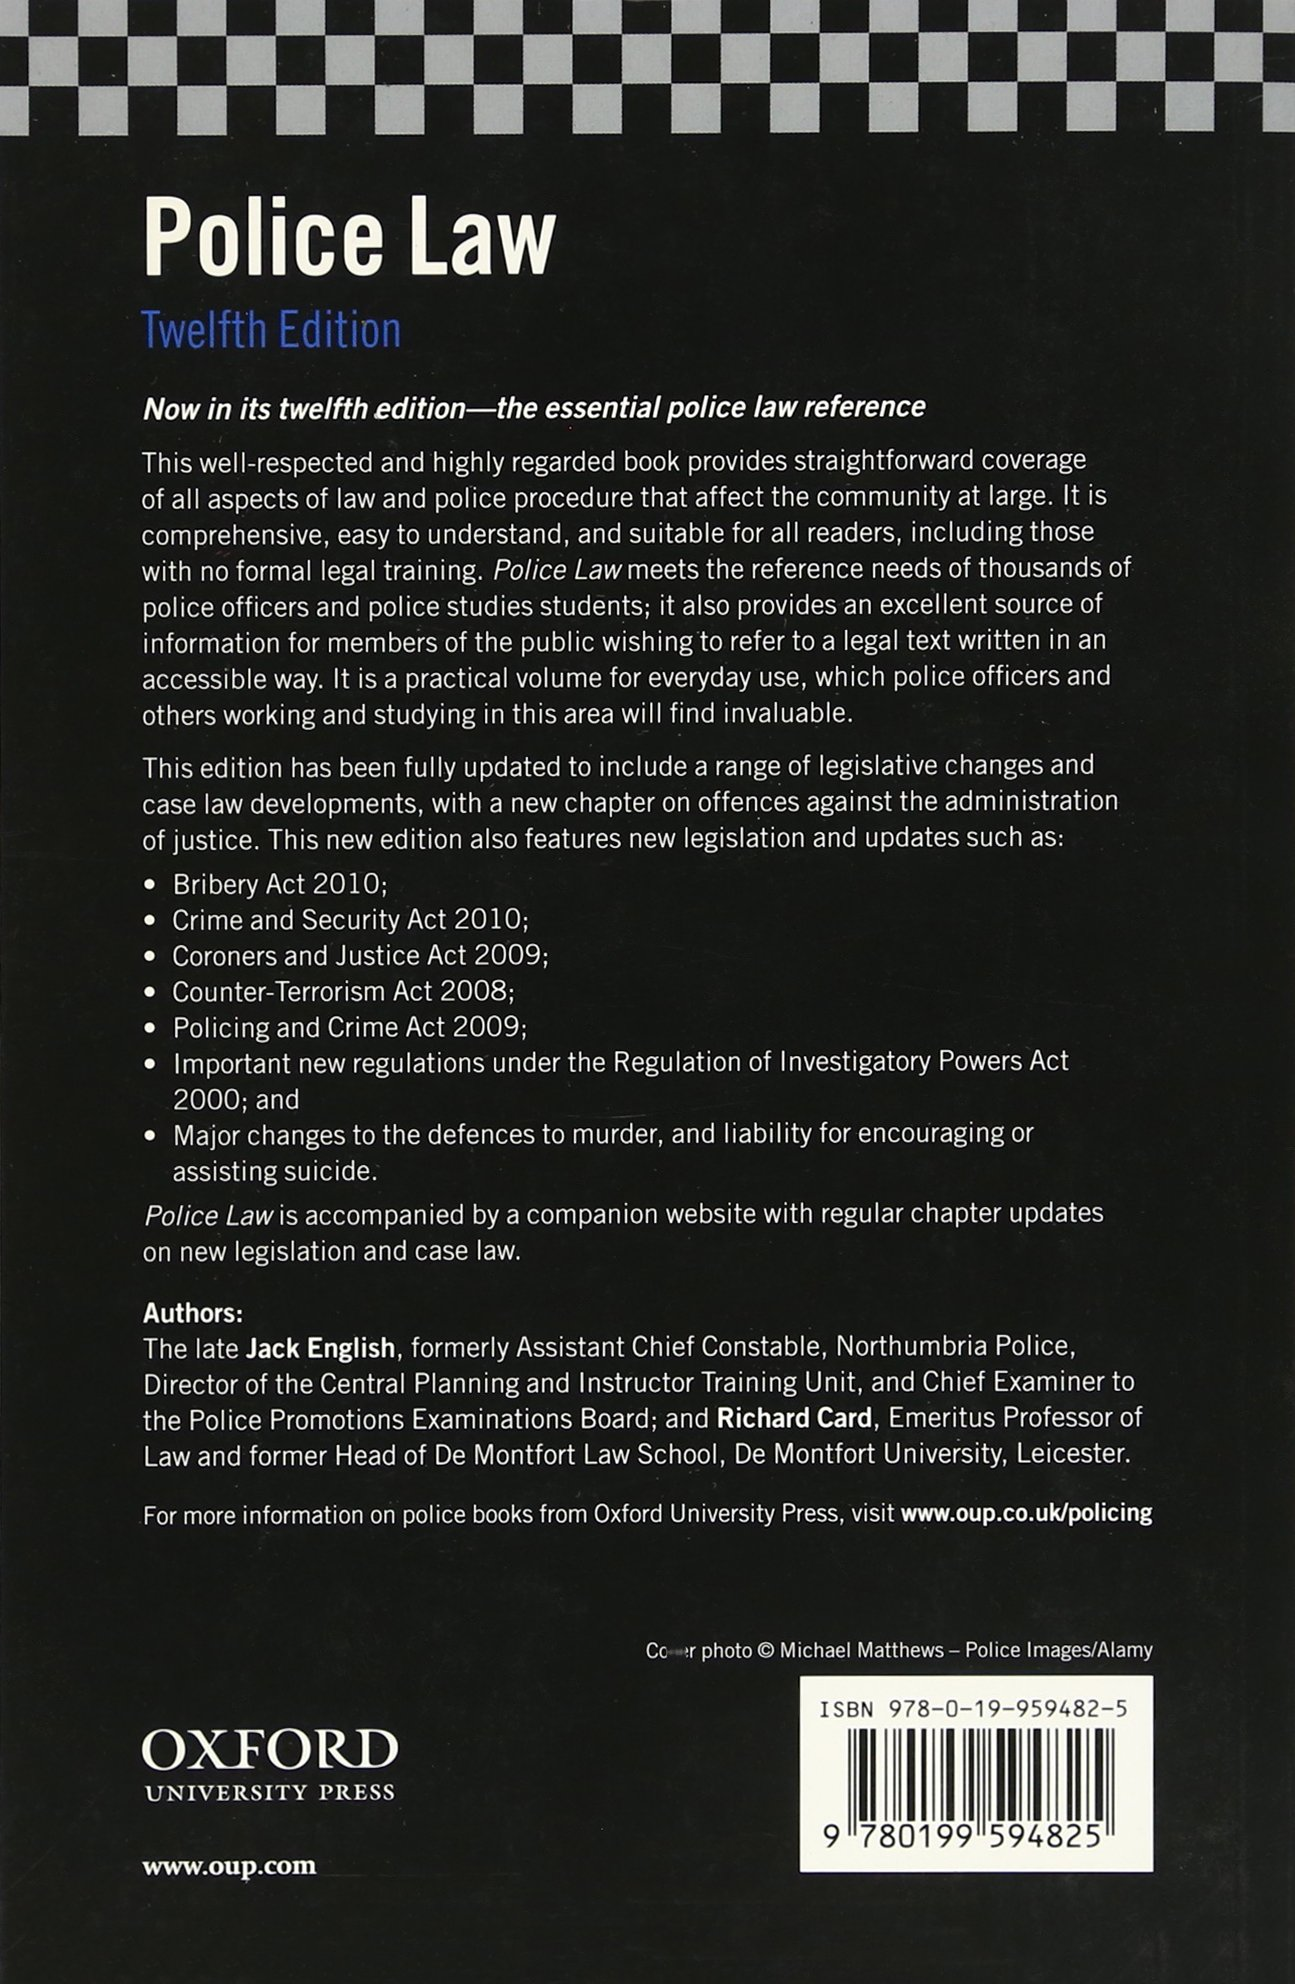 Police Law: Amazon co uk: Jack English, Richard Card